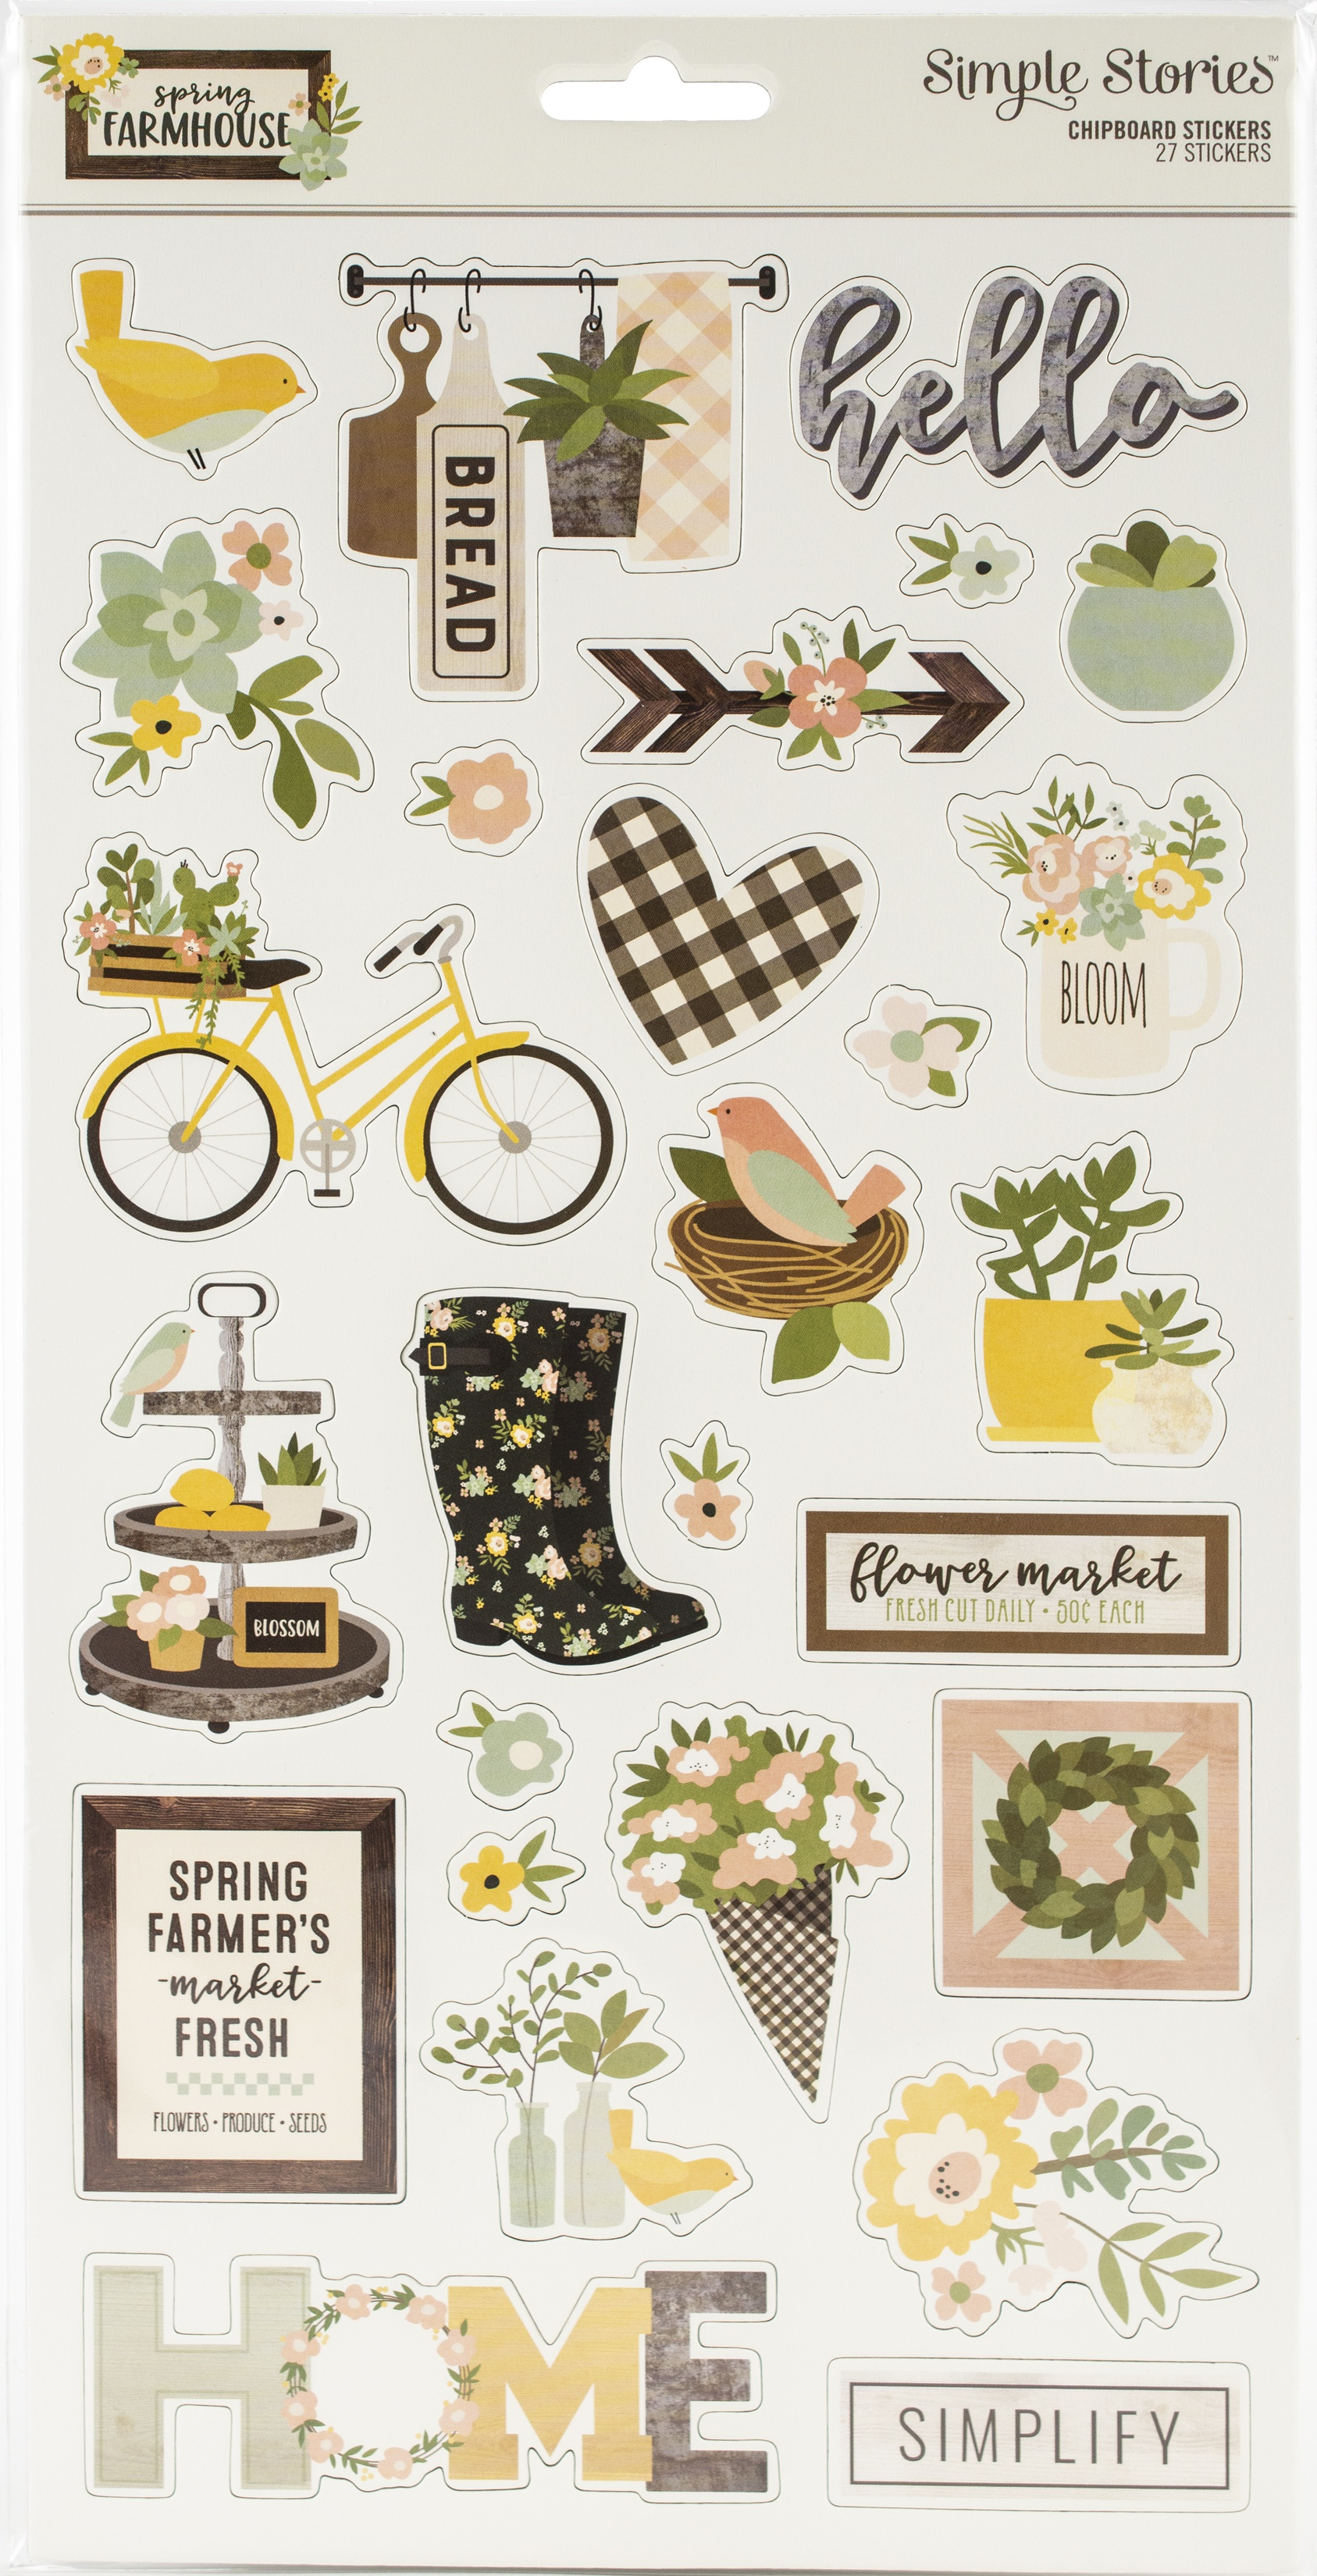 6X12 CHIPB-SPRING FARM STICKERS